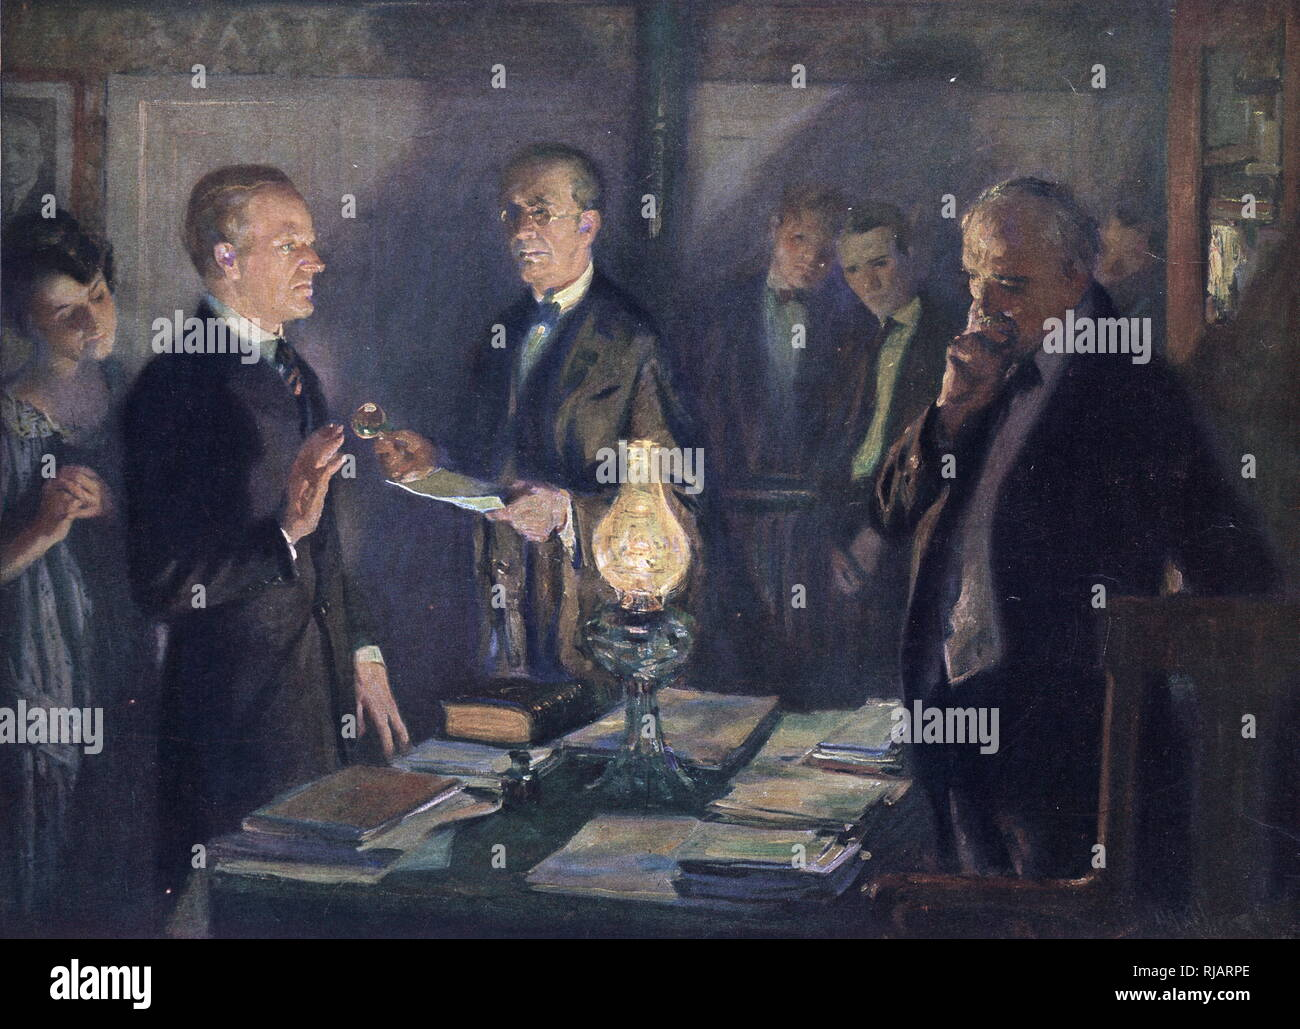 The first inauguration of Calvin Coolidge as the 30th President of the United States was held on Friday, August 3, 1923 at the Coolidge Homestead in Plymouth Notch, Vermont, following the death of President Warren G. Harding the previous evening. Stock Photo